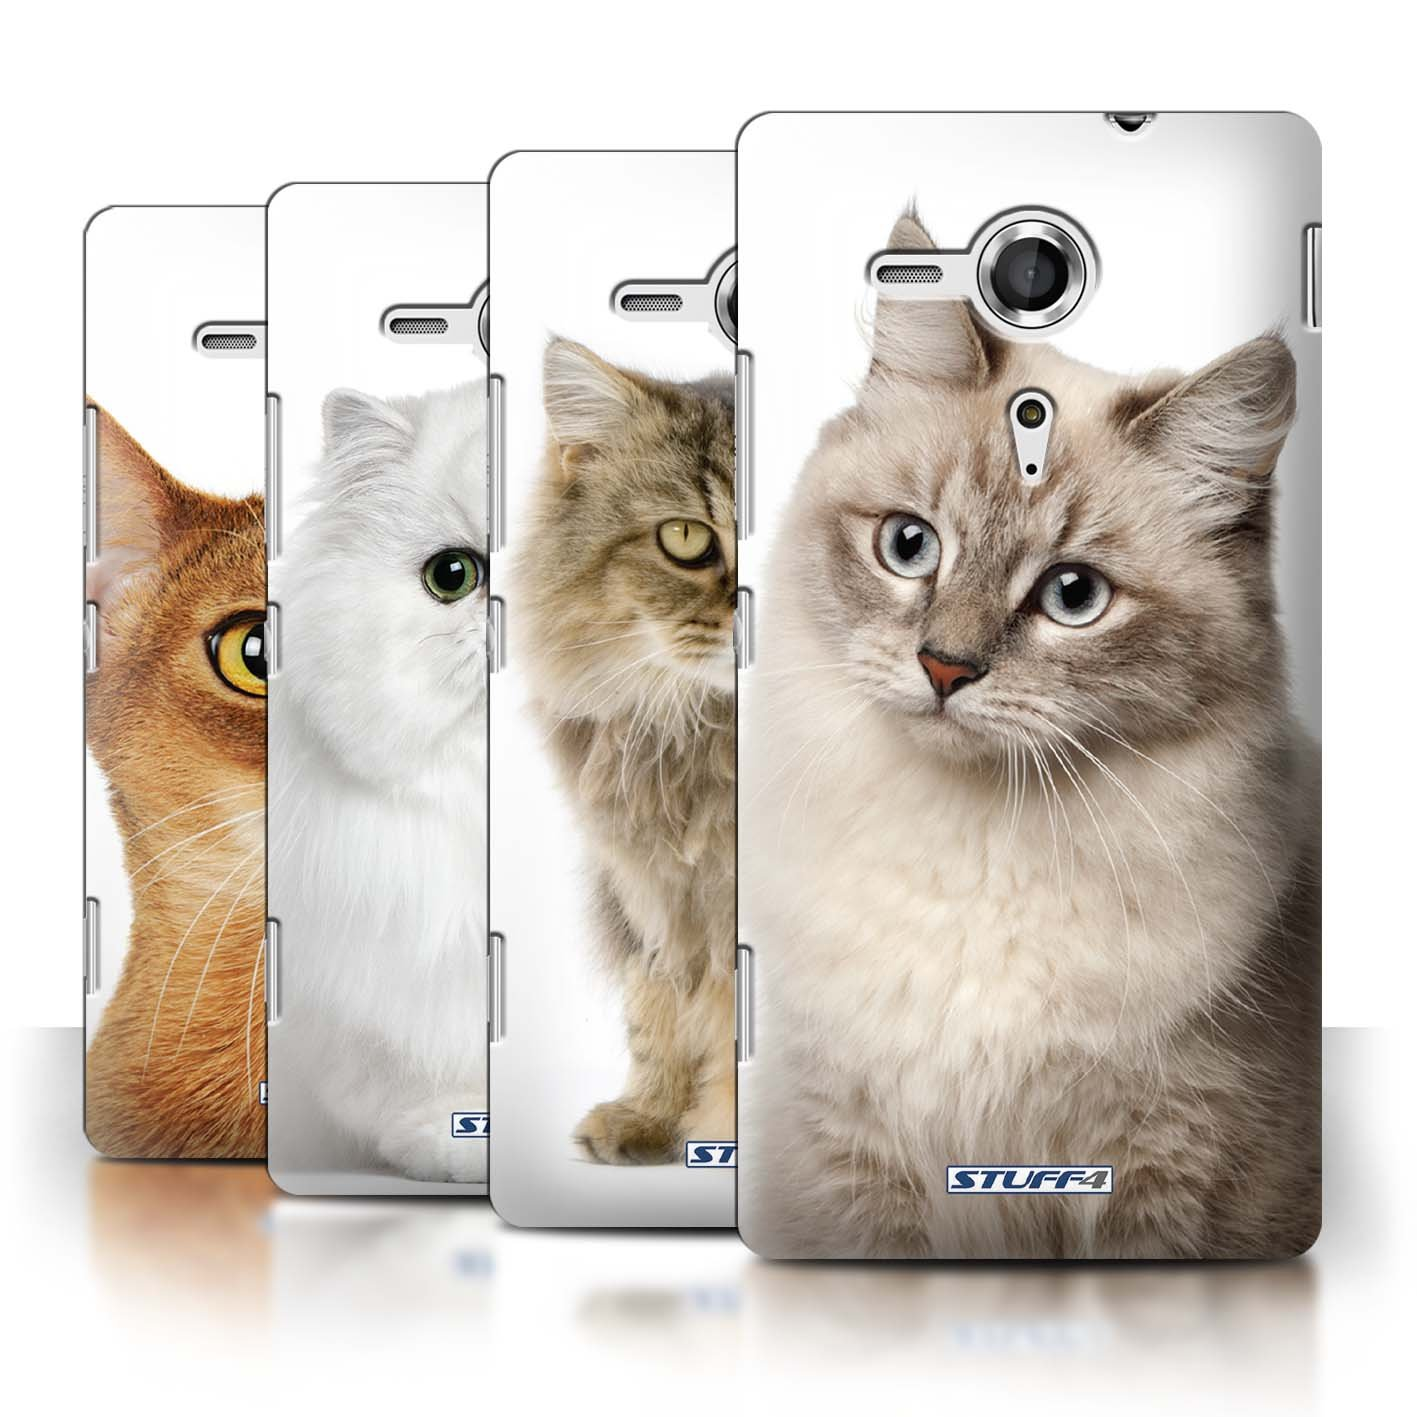 STUFF4 Phone Case / Cover for Sony Xperia SP/C5303 / Multipack / Cat Breeds CollectionCustomer reviews and more information